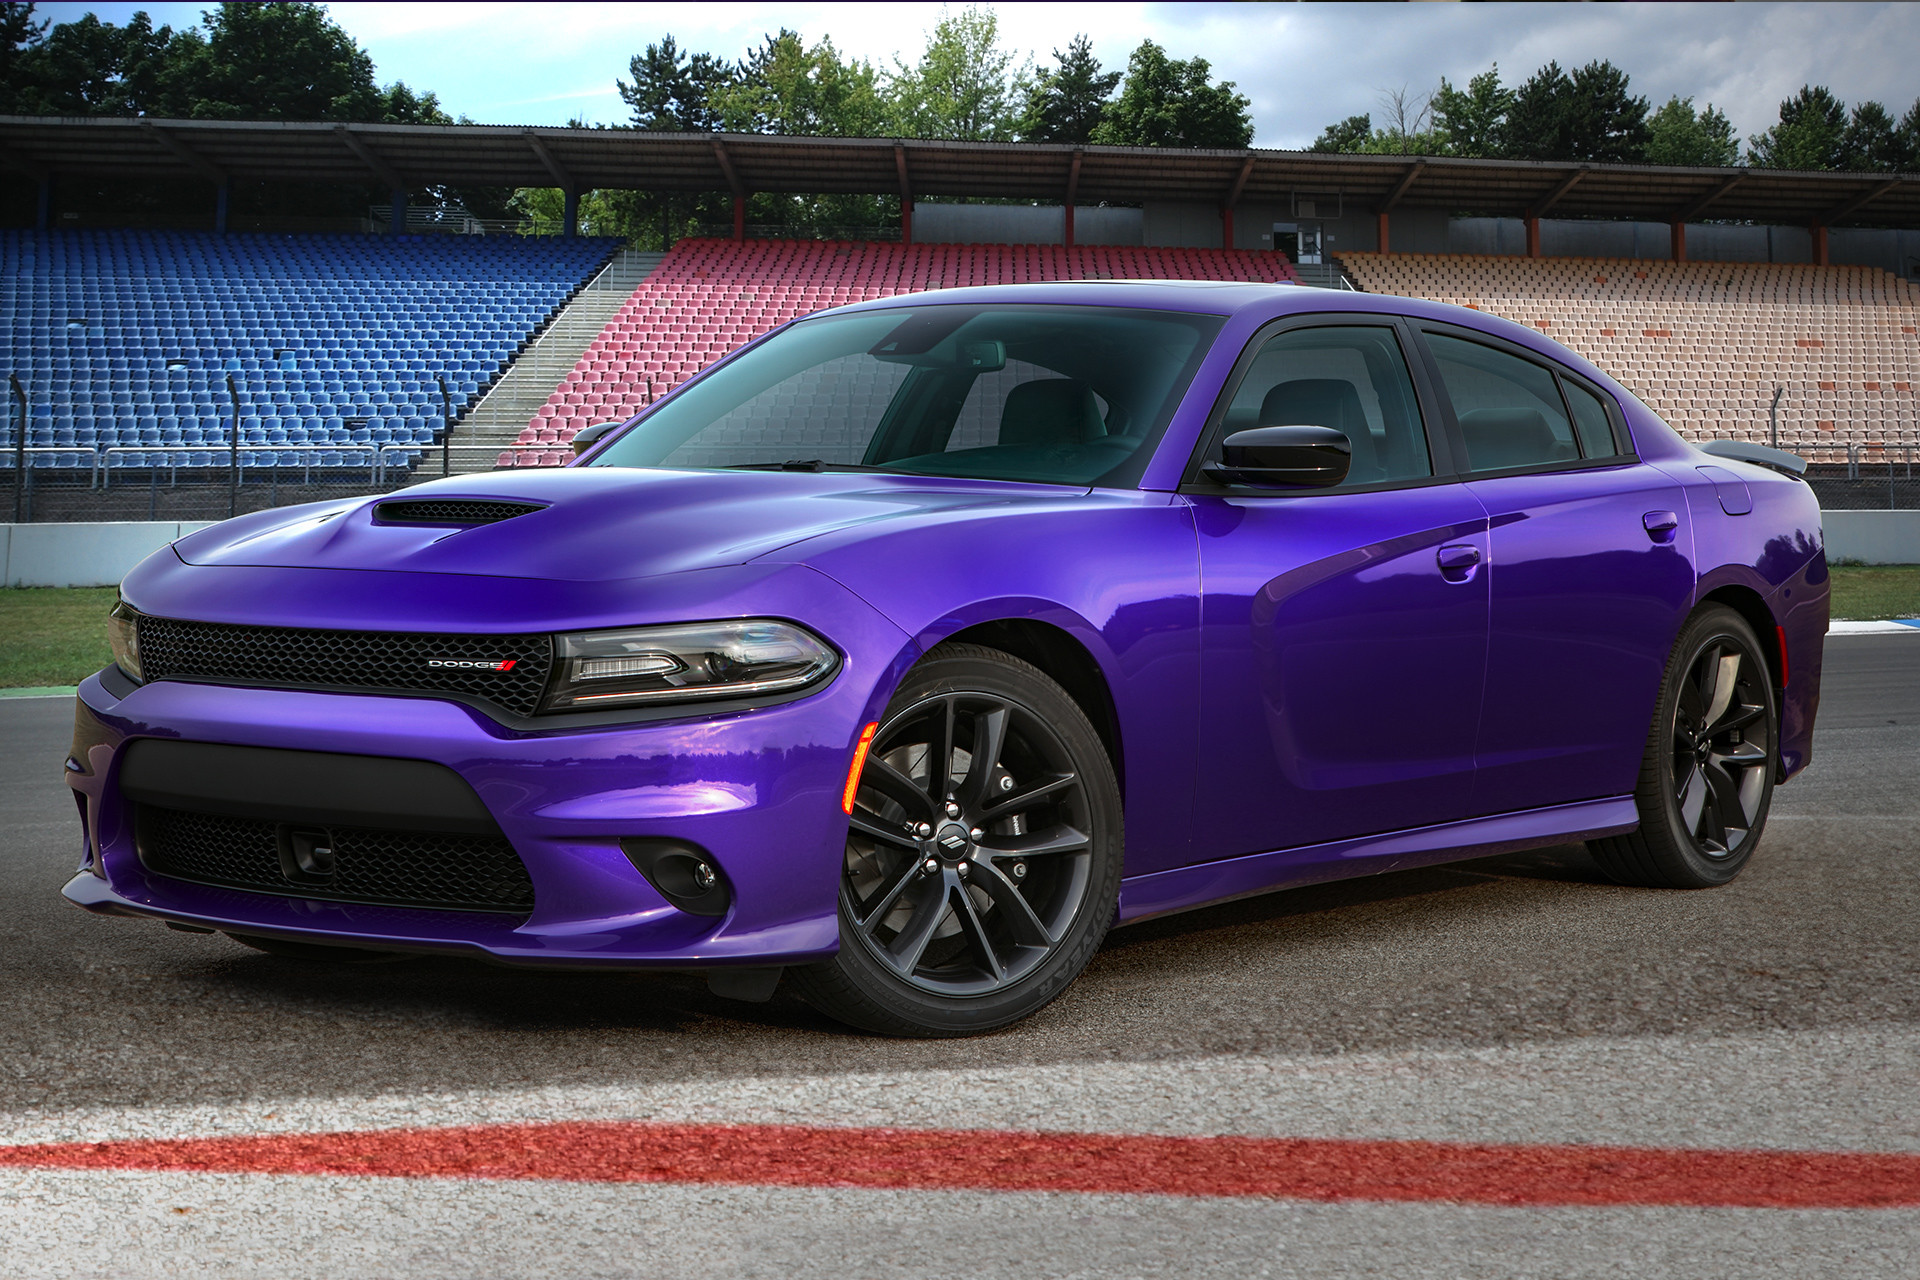 2019 Dodge Charger crazy plum side view